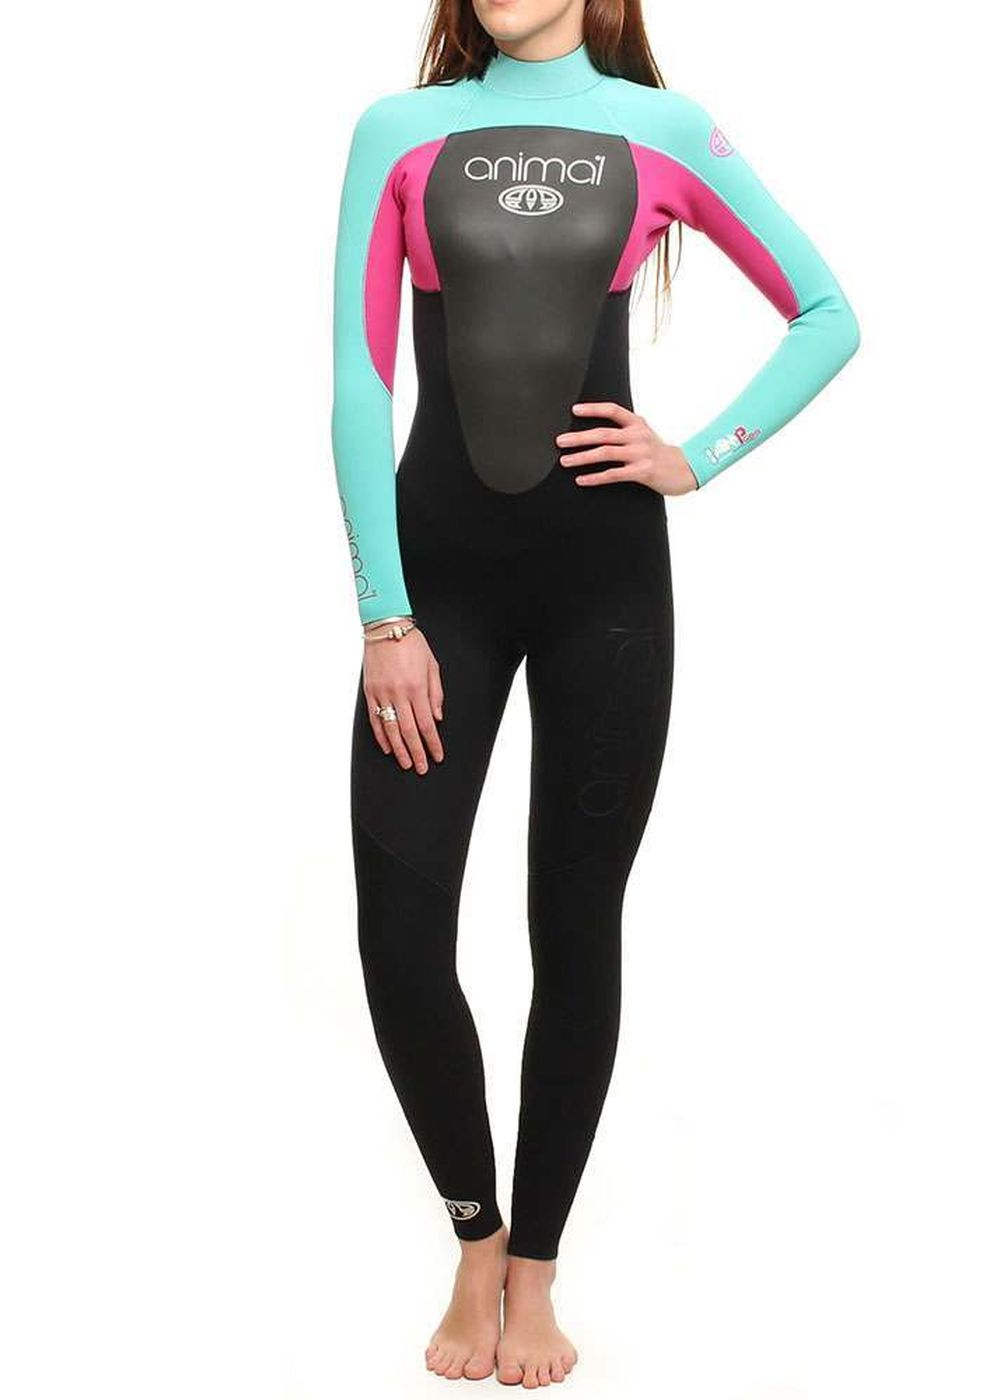 ANIMAL WOMENS AMP 3/2 GBS WETSUIT 2015 Pink